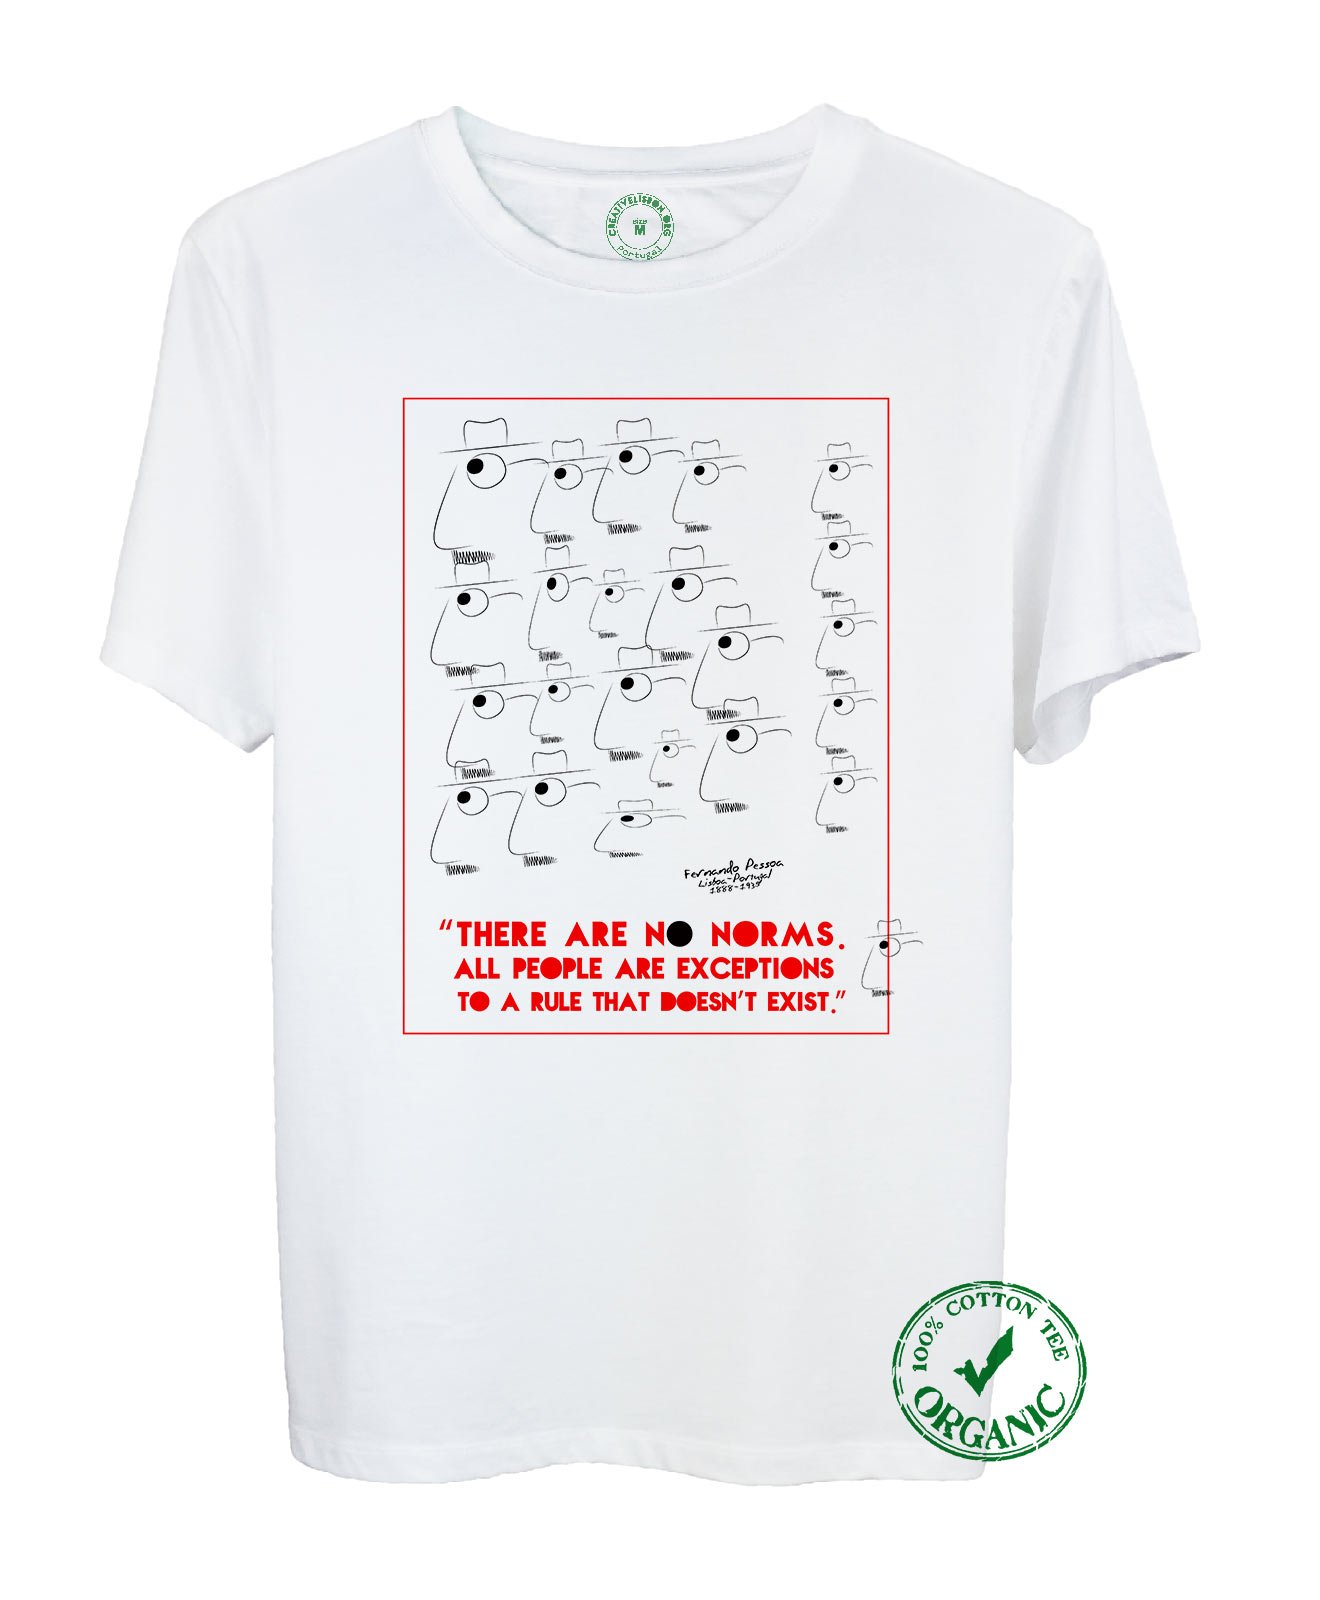 Pessoa's No Norms Organic Cotton Tee with quote and the poet cartoon